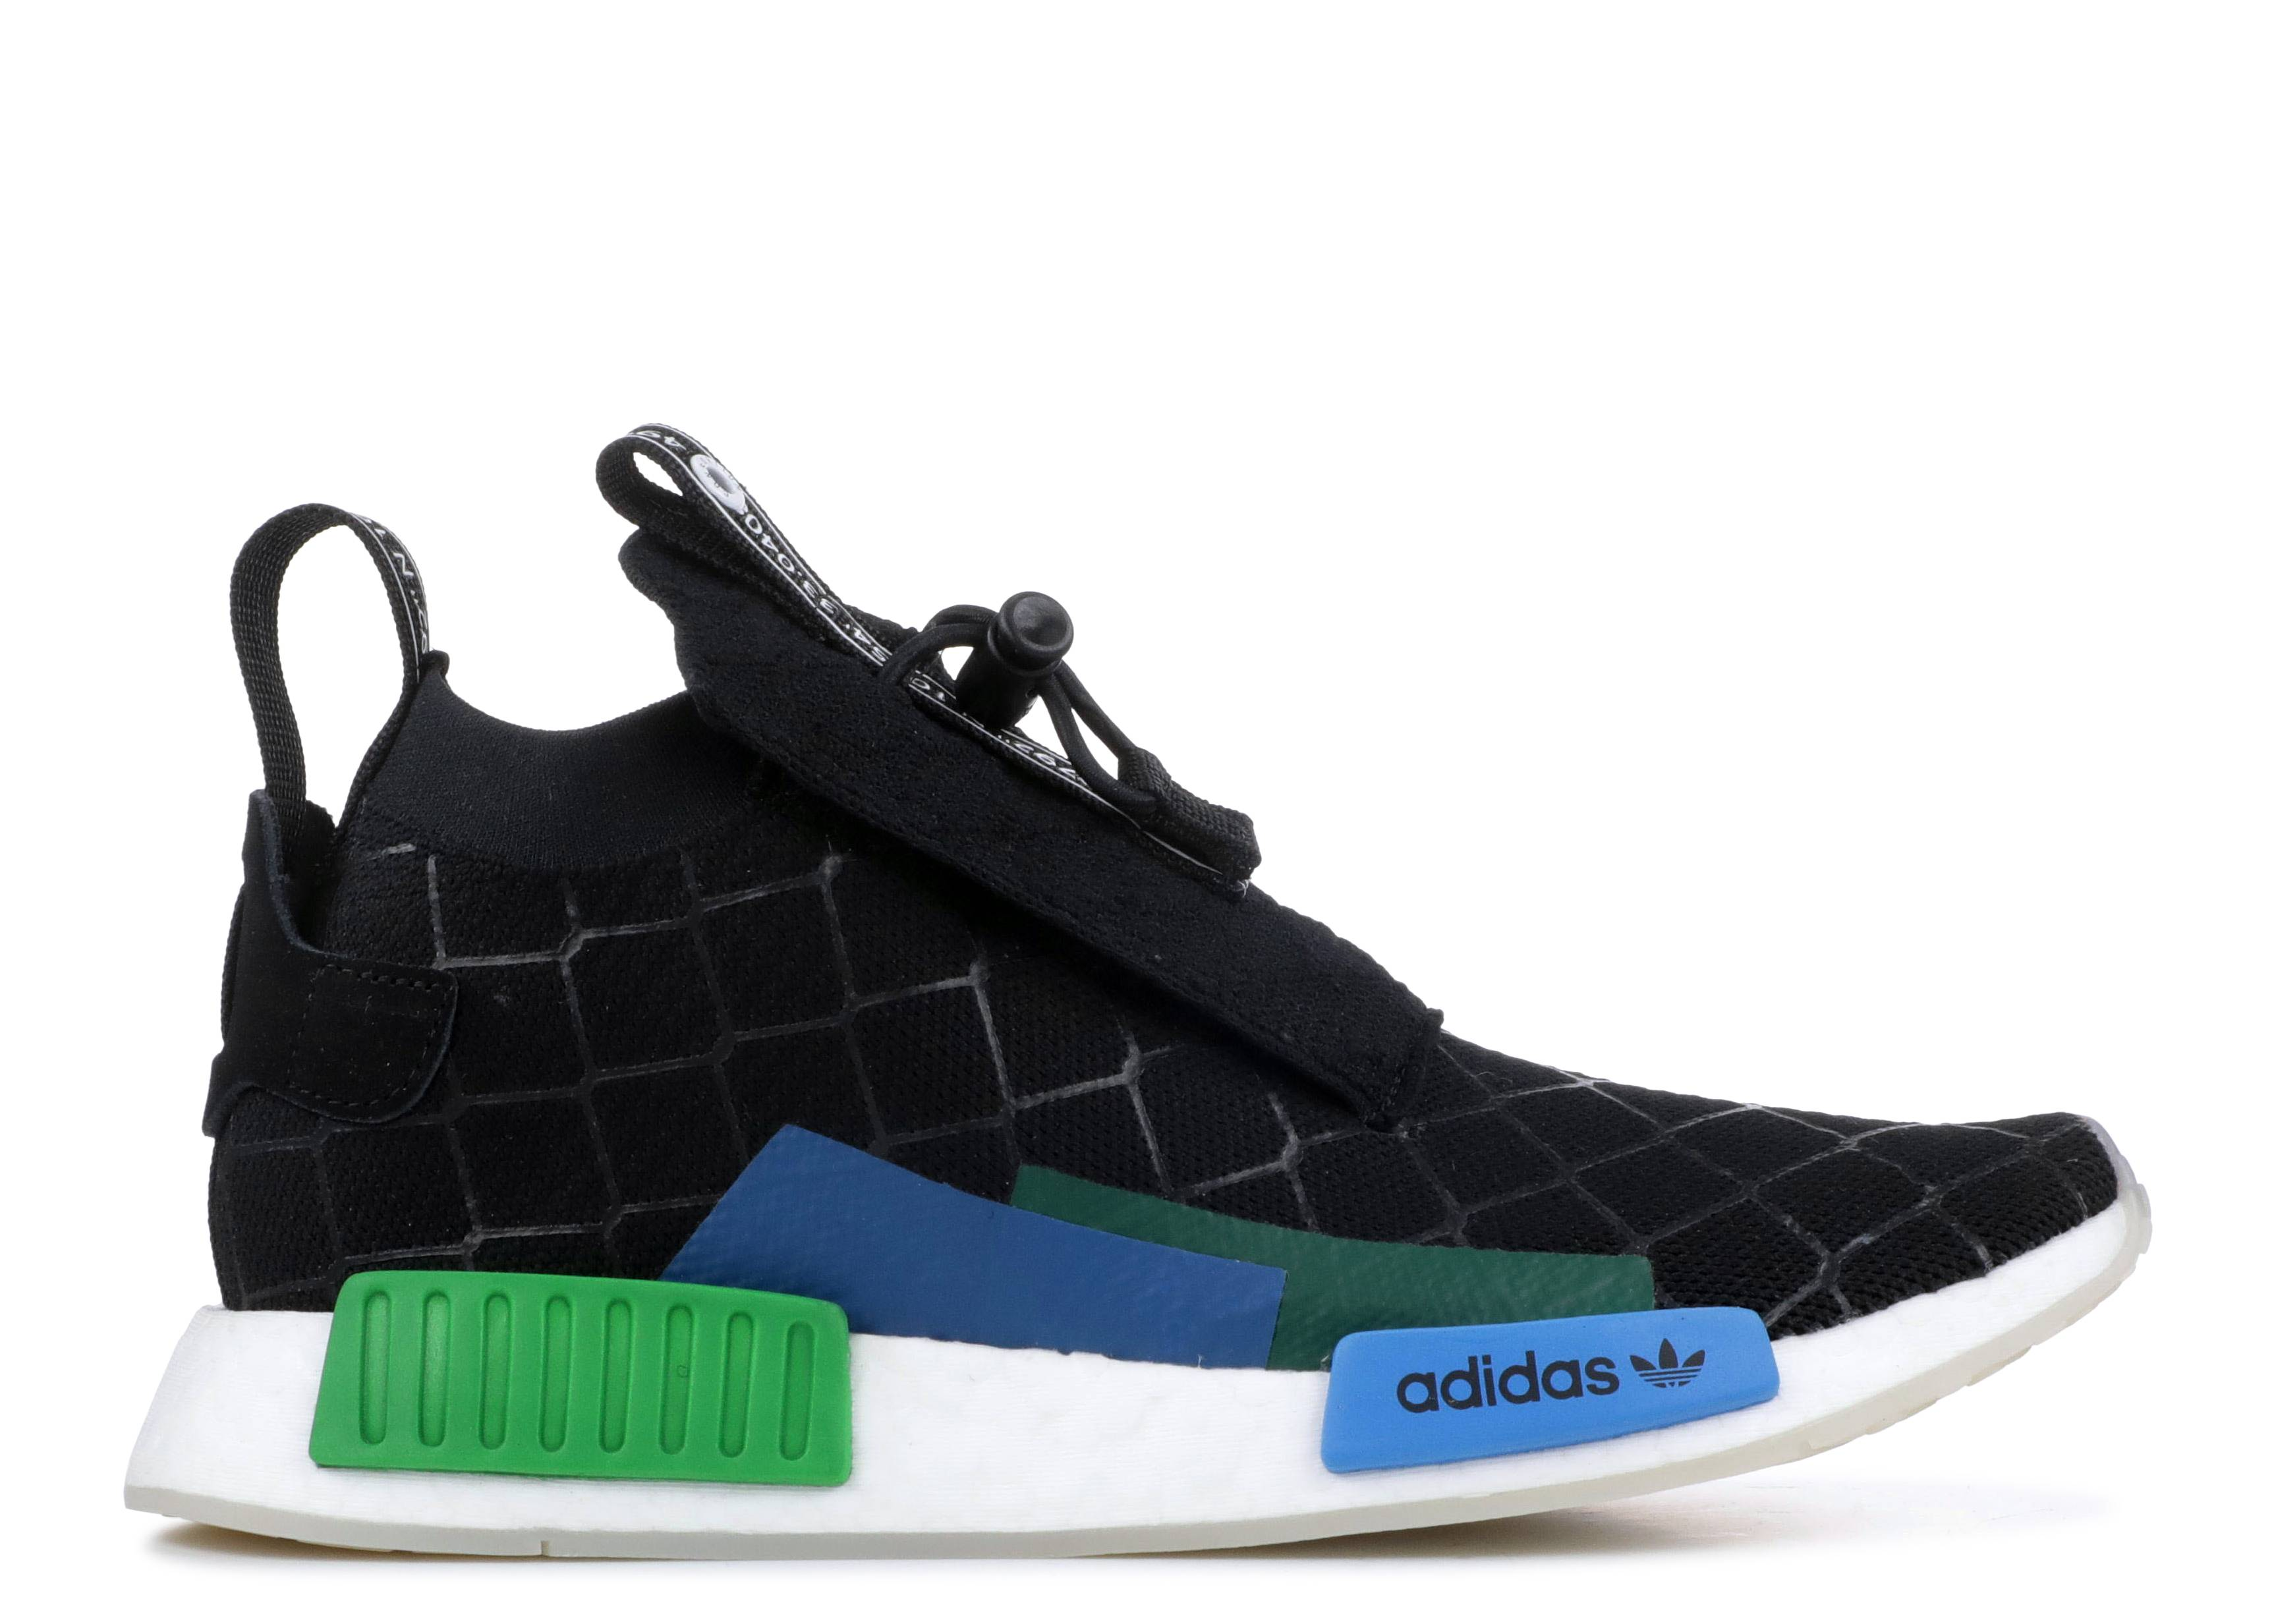 Best Best Best Adidas Nmd Schuhes Buy Bild collection ff9dbe